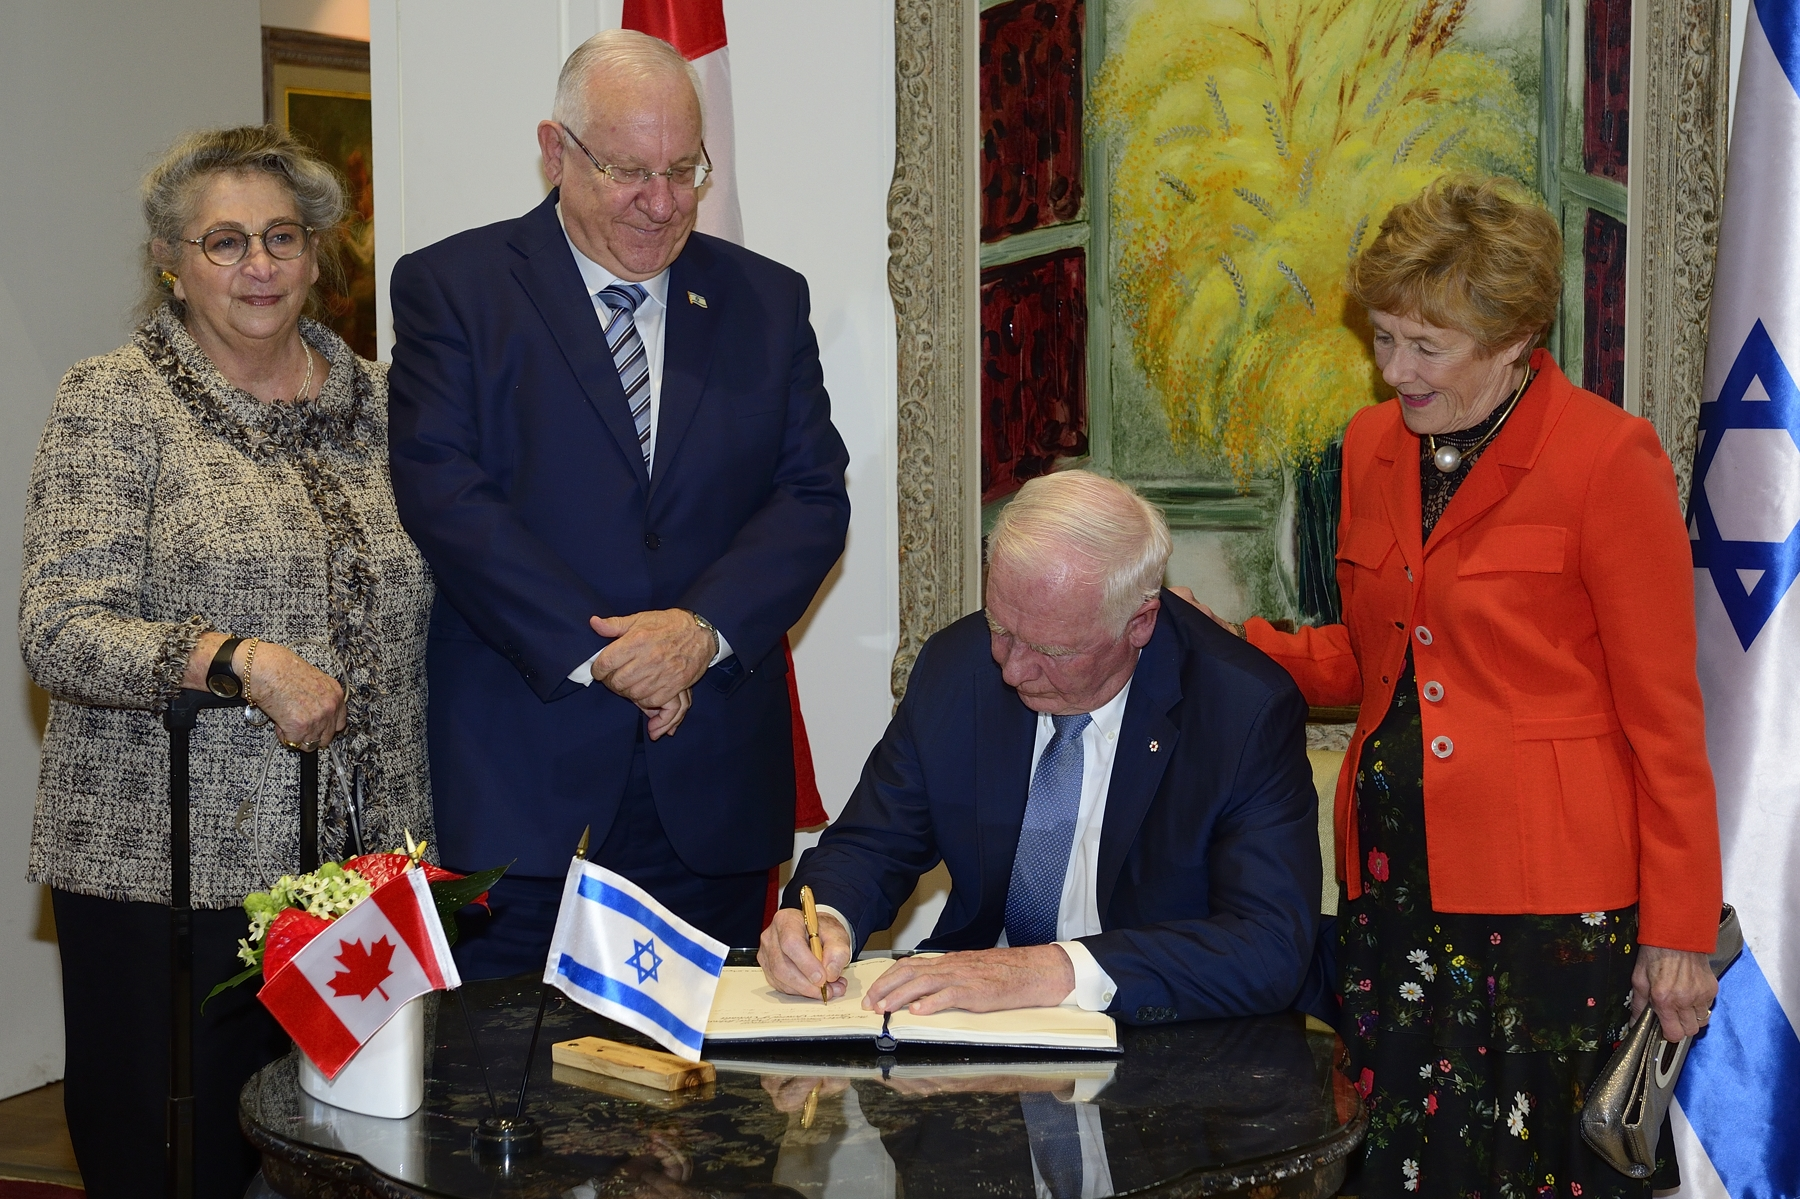 To mark their visit, Their Excellencies signed the guest book.